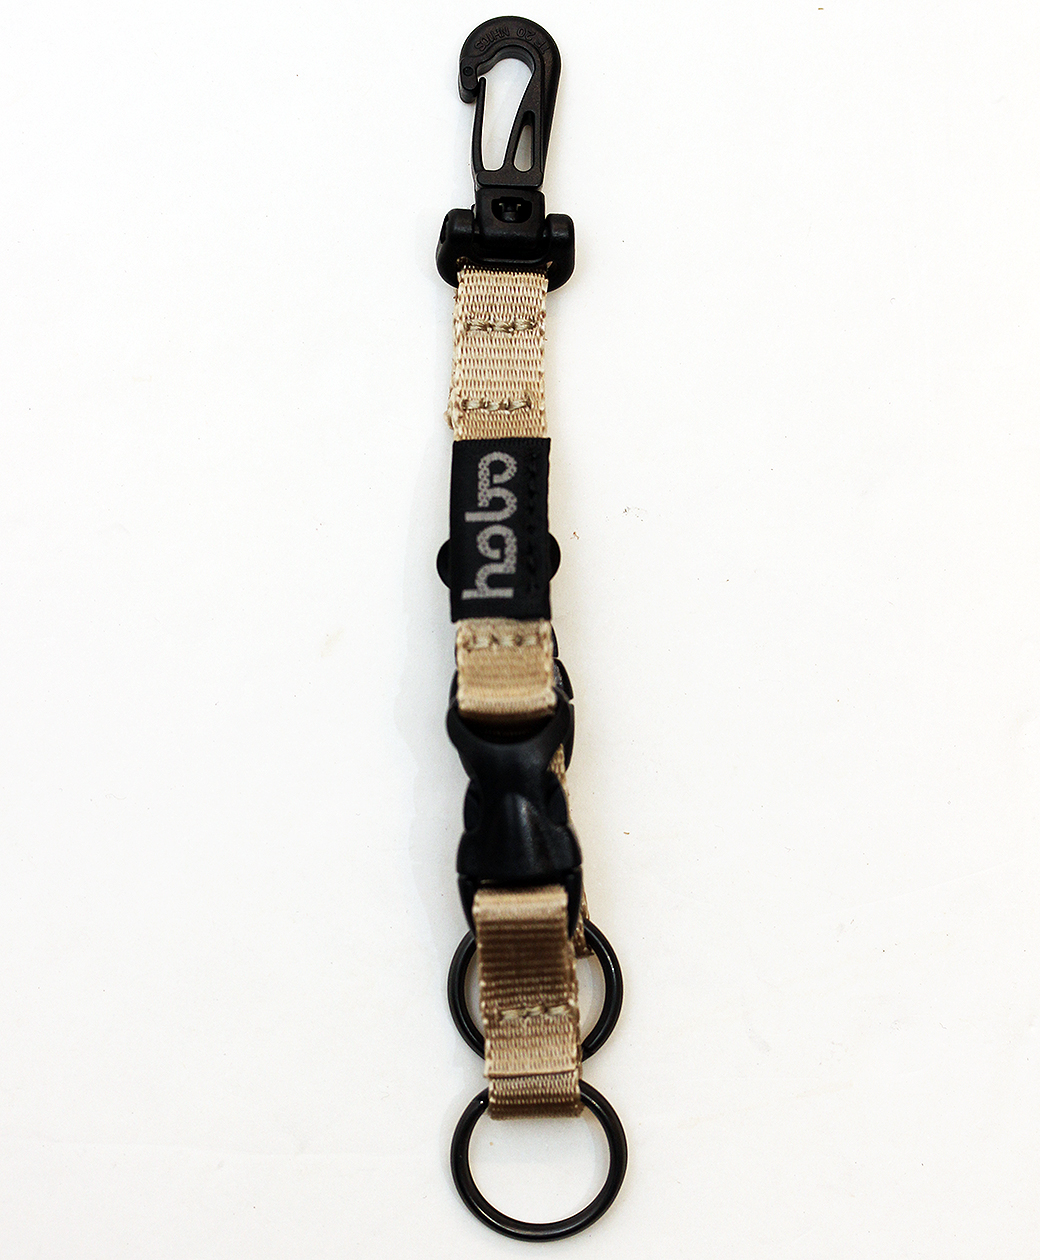 hobo NYLON TAPE KEY RING with DOUBLE BUCKLE RELEASE(BEIGE)